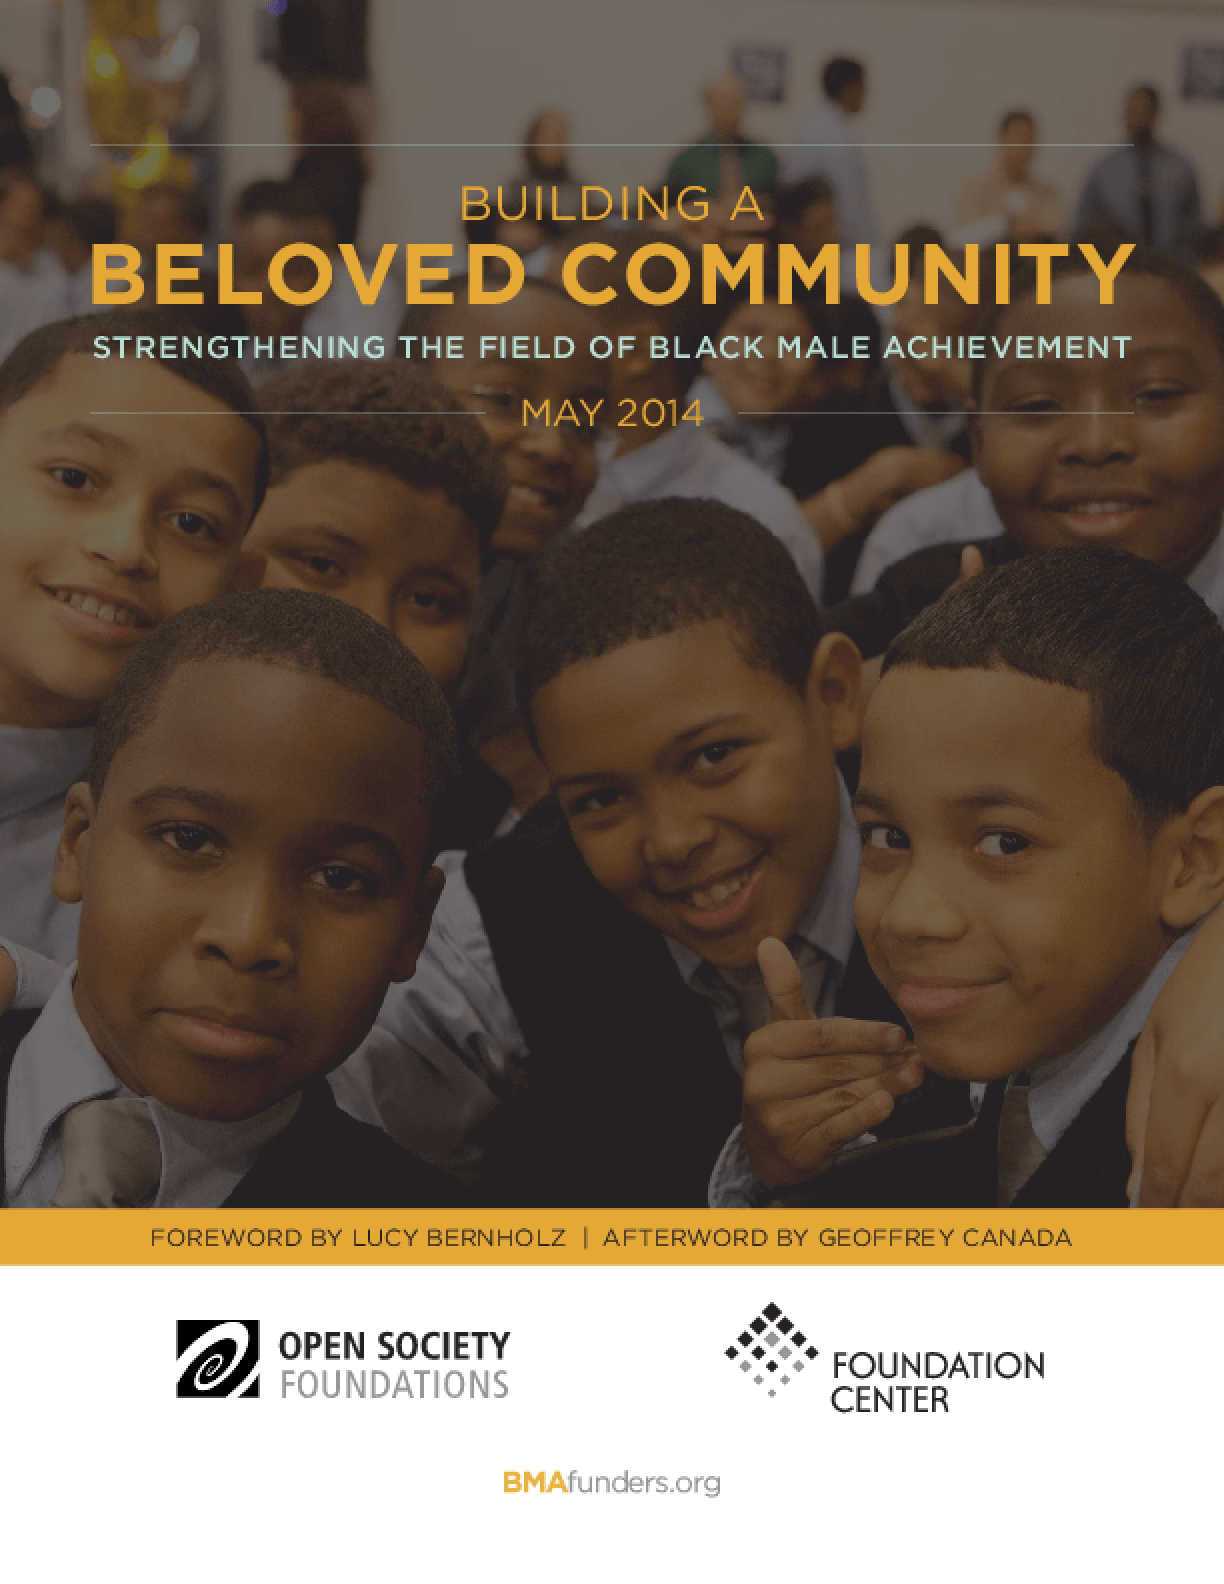 Building a Beloved Community: Strengthening the Field of Black Male Achievement